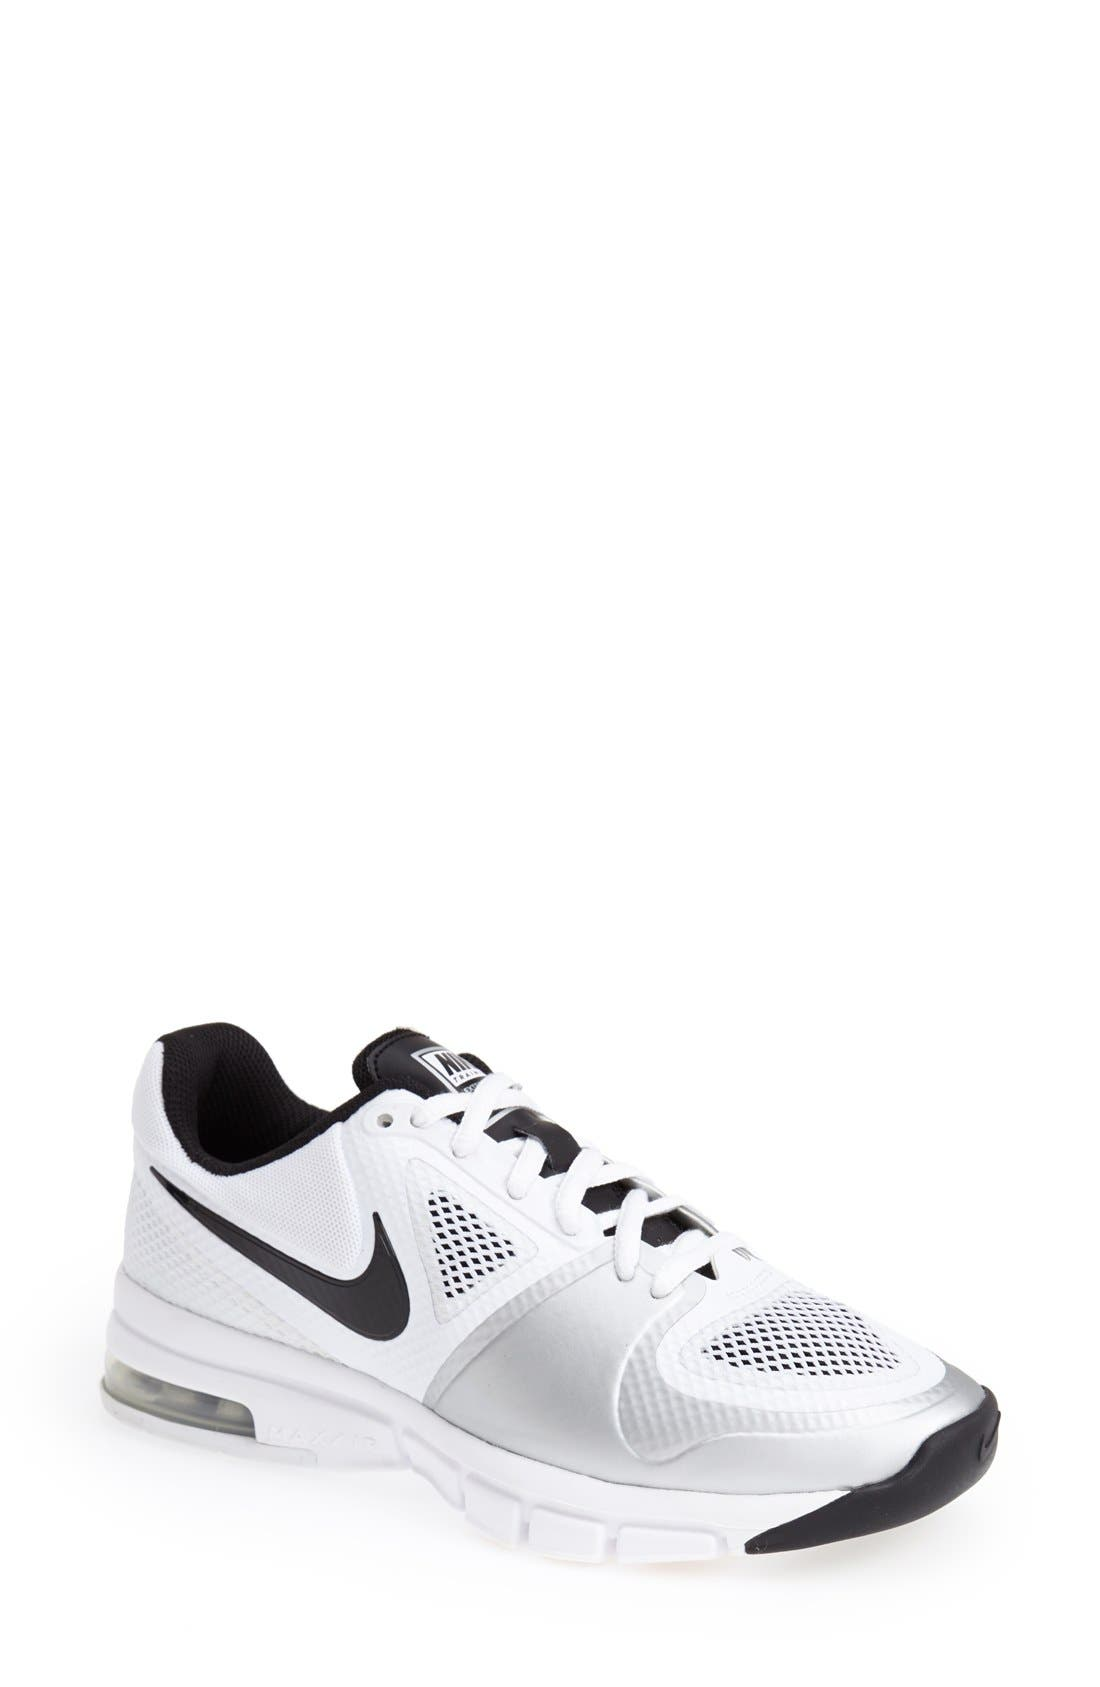 Alternate Image 1 Selected - Nike 'Air Extreme' Volleyball Shoe (Women)